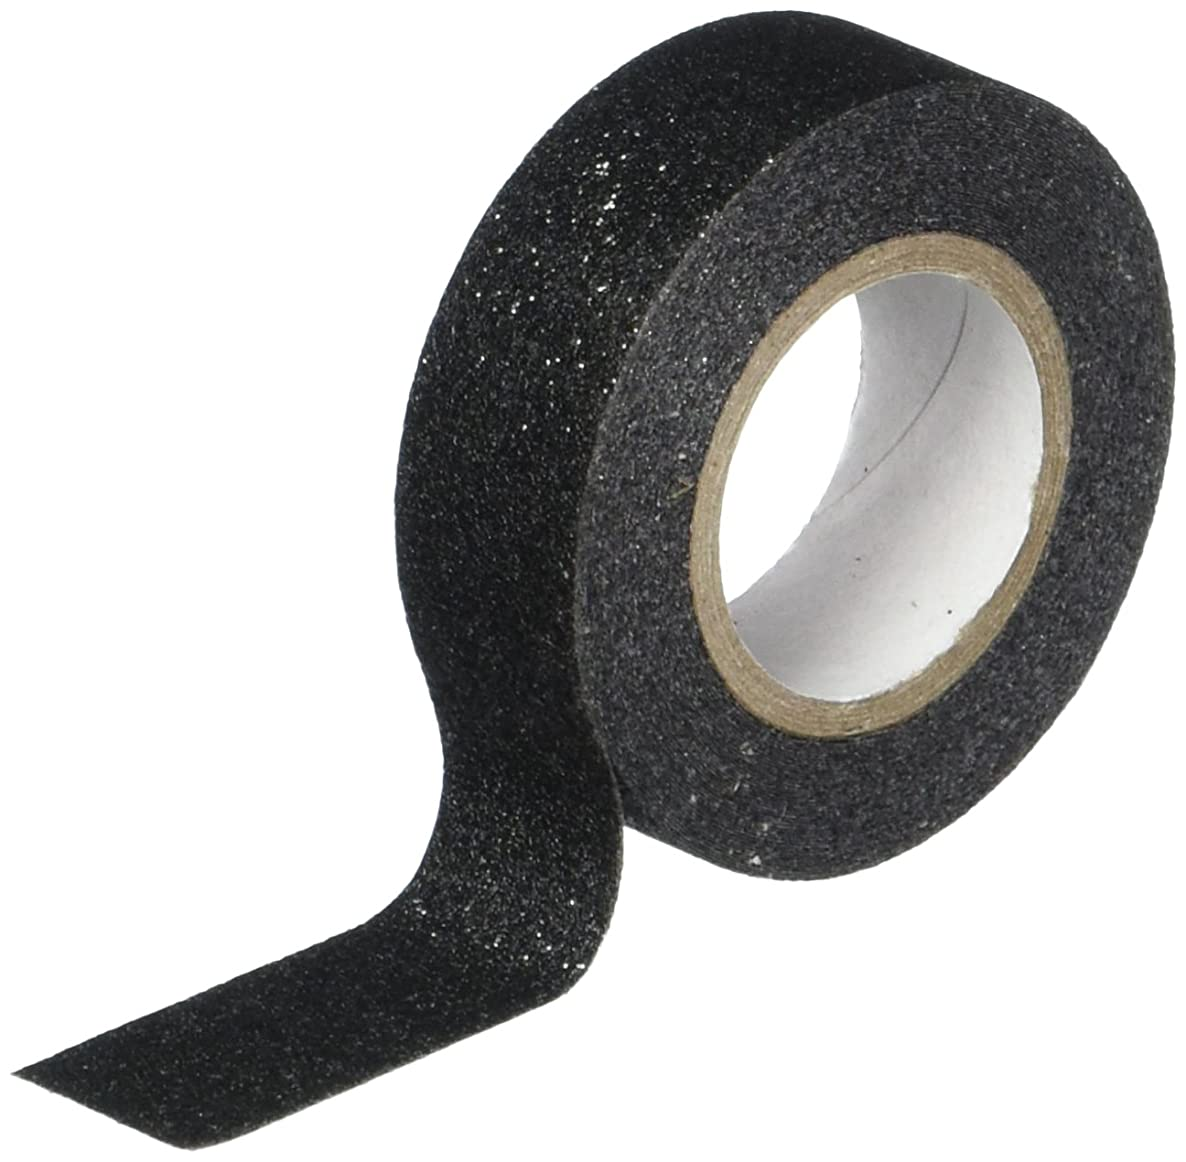 Best Creation Glitter Tape, 15mm by 5m, Black